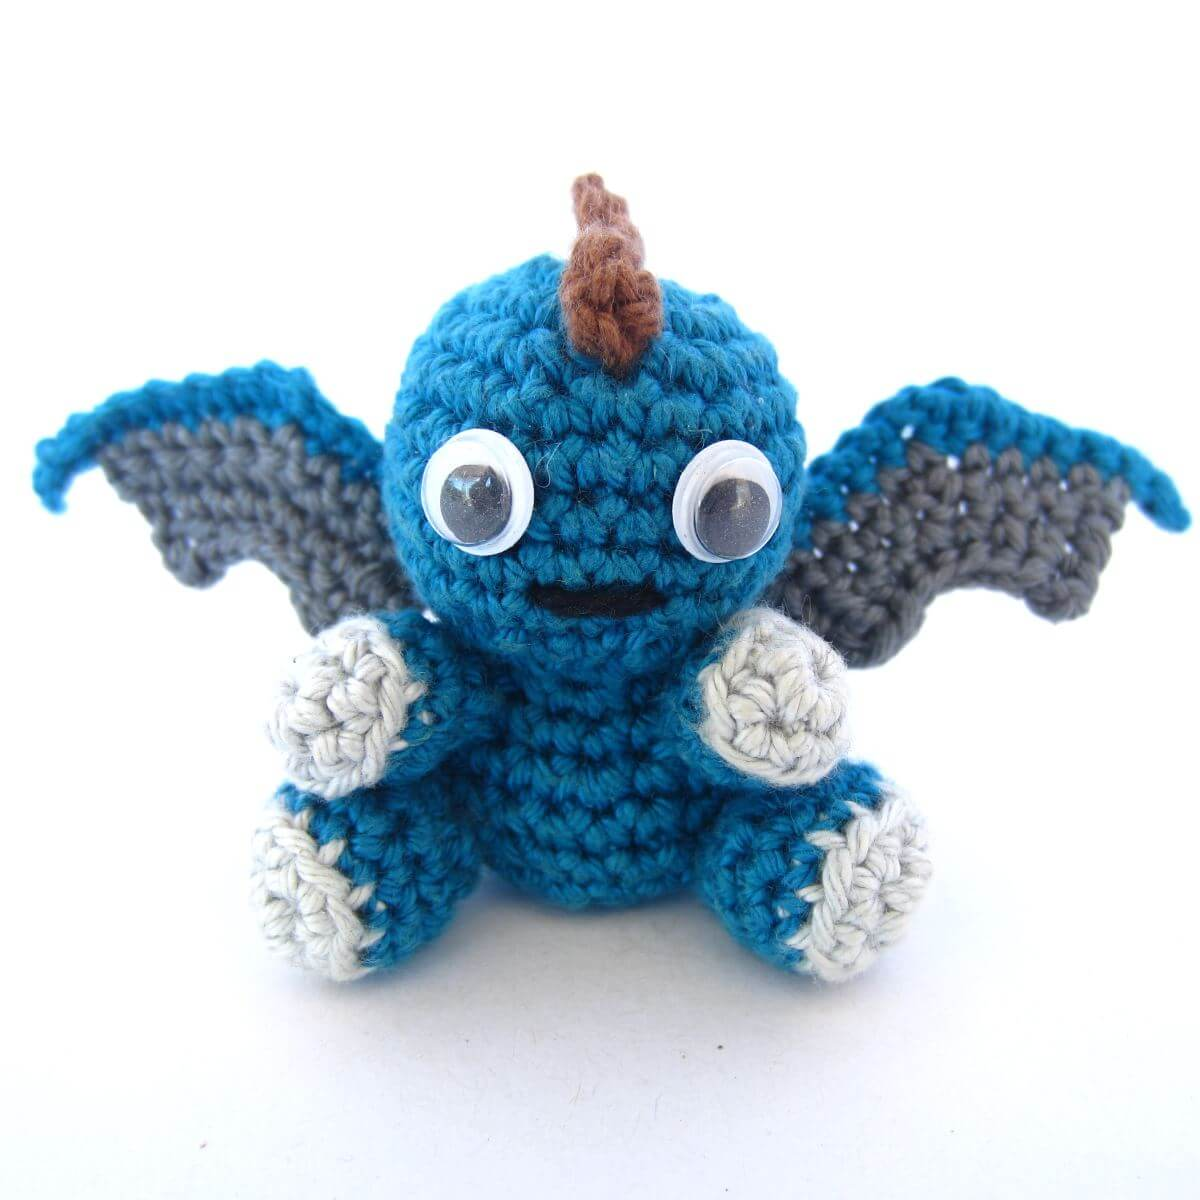 Dragon Azul Amigurumi : Amigurumi Patterns Archives - Supergurumi